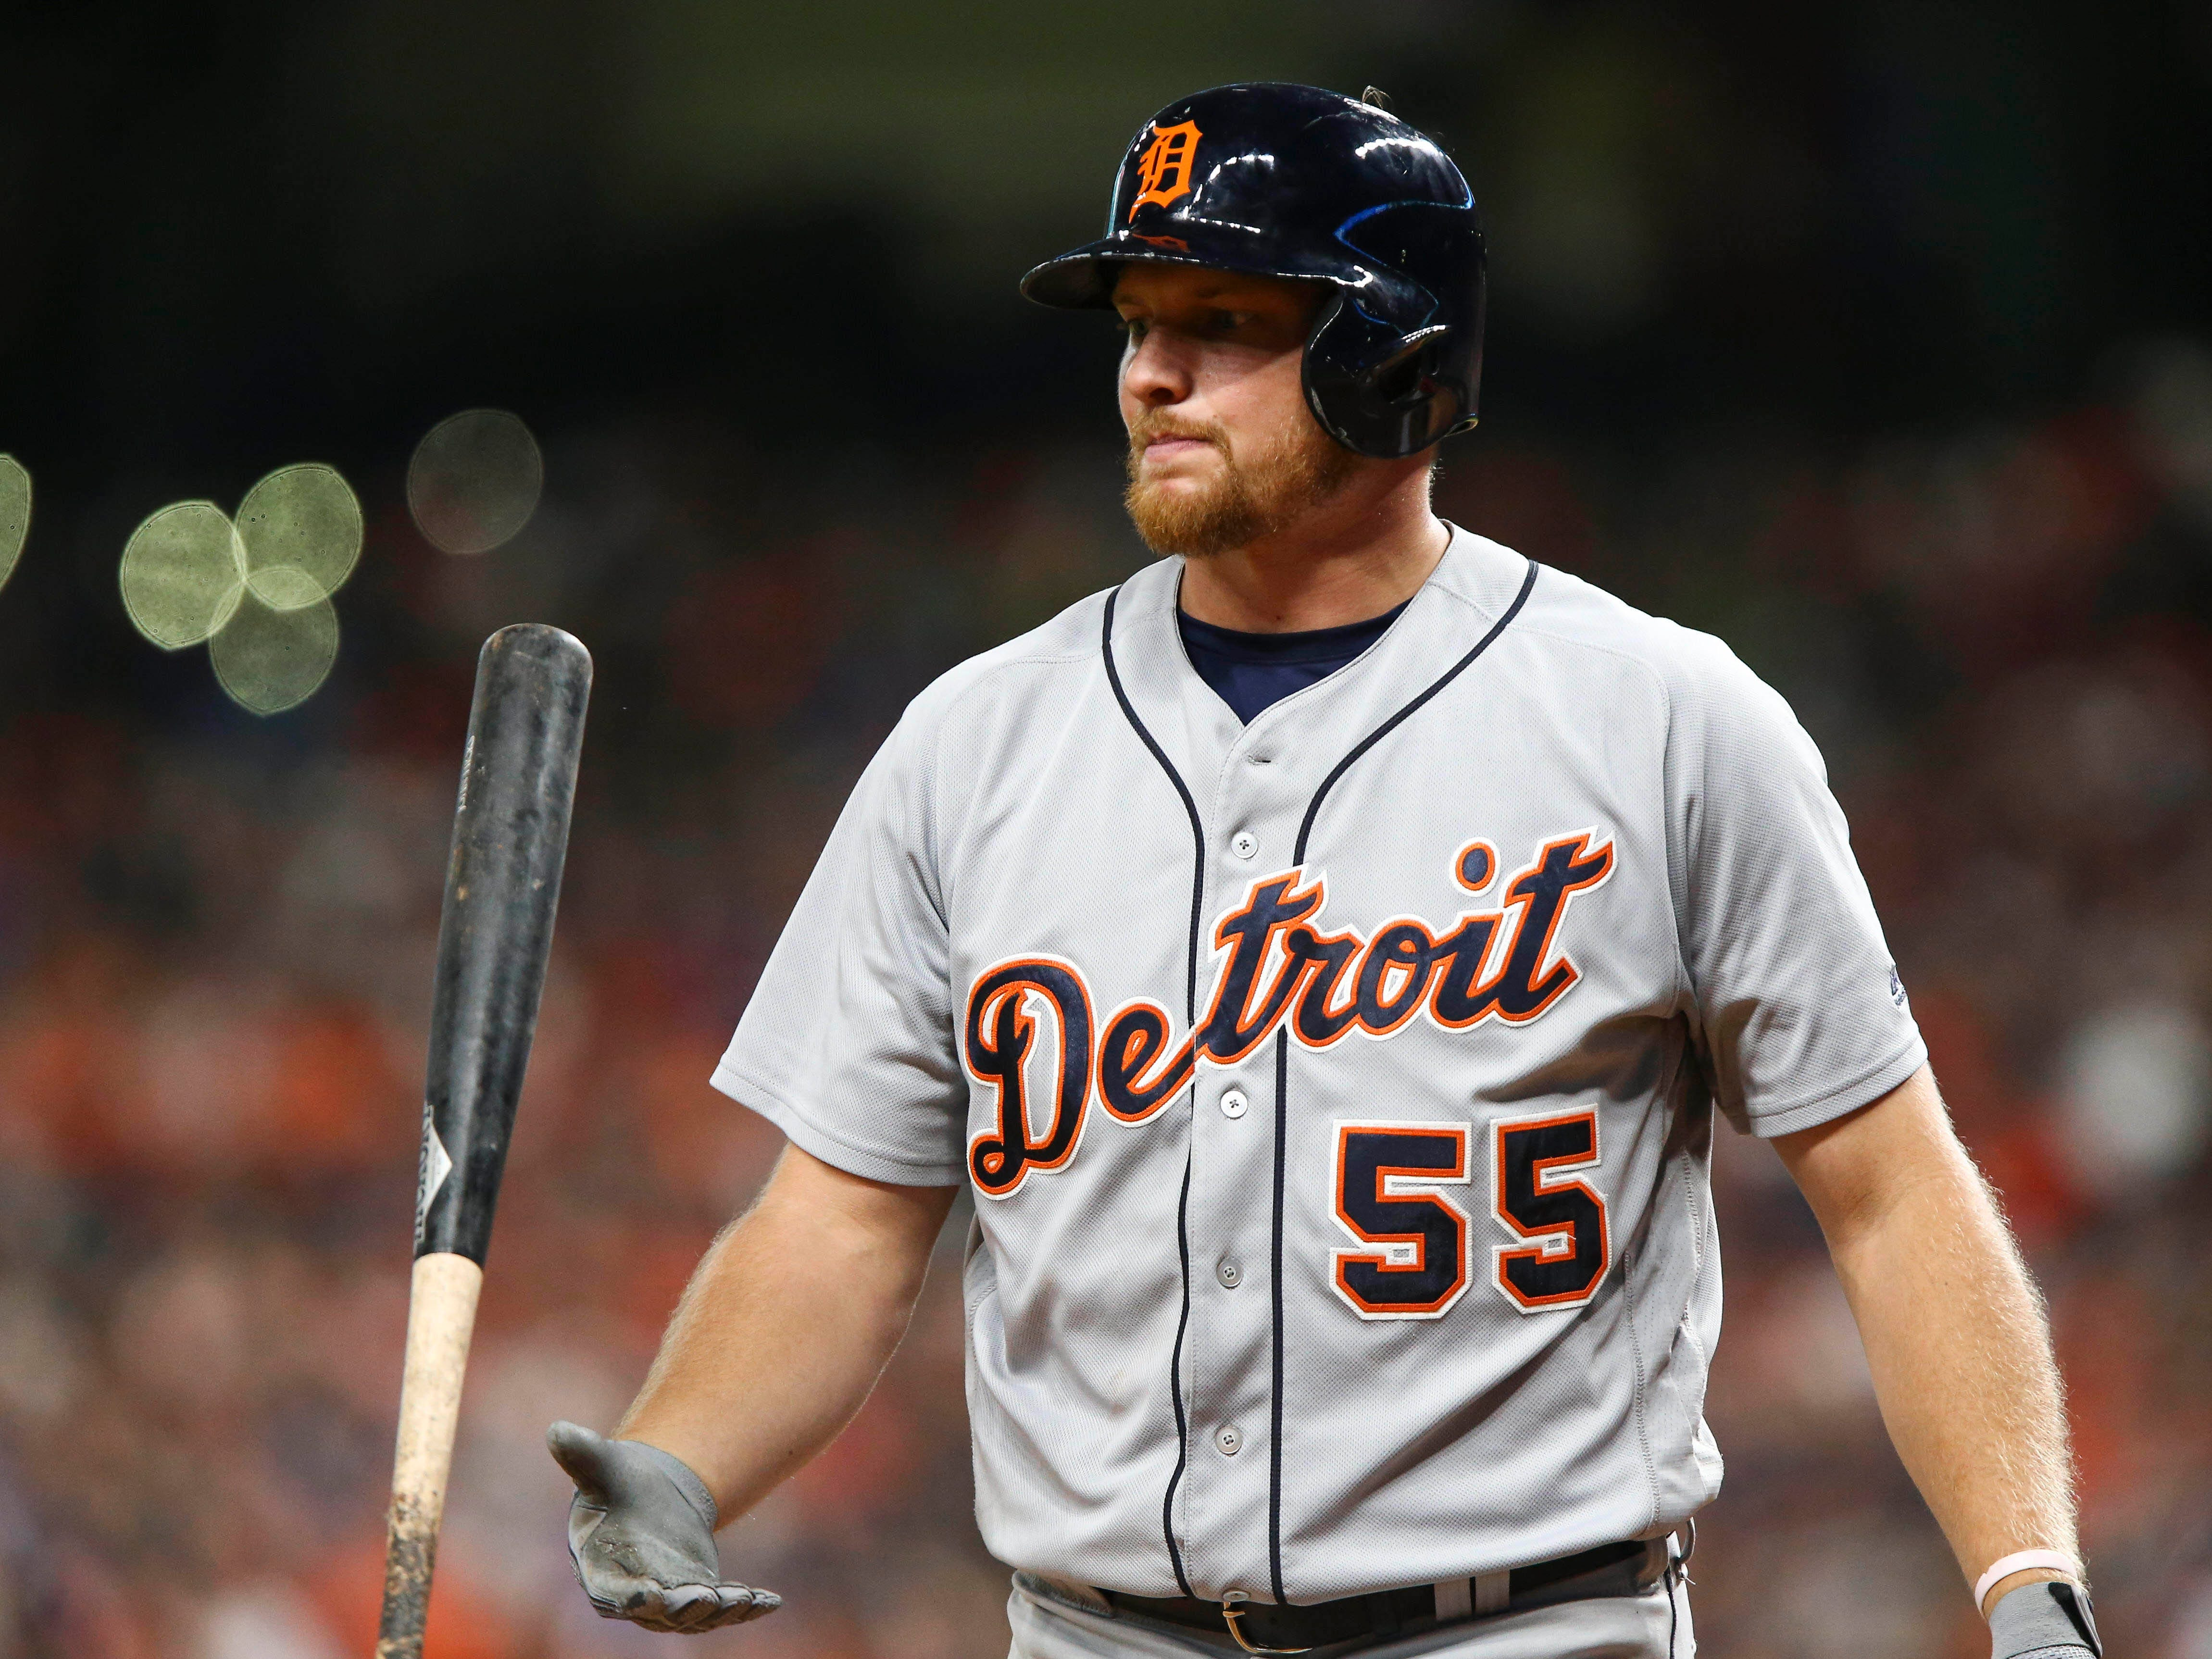 July 13 in Houston: Astros 3, Tigers 0. John Hicks flips his bat after striking out during the eighth inning at Minute Maid Park.